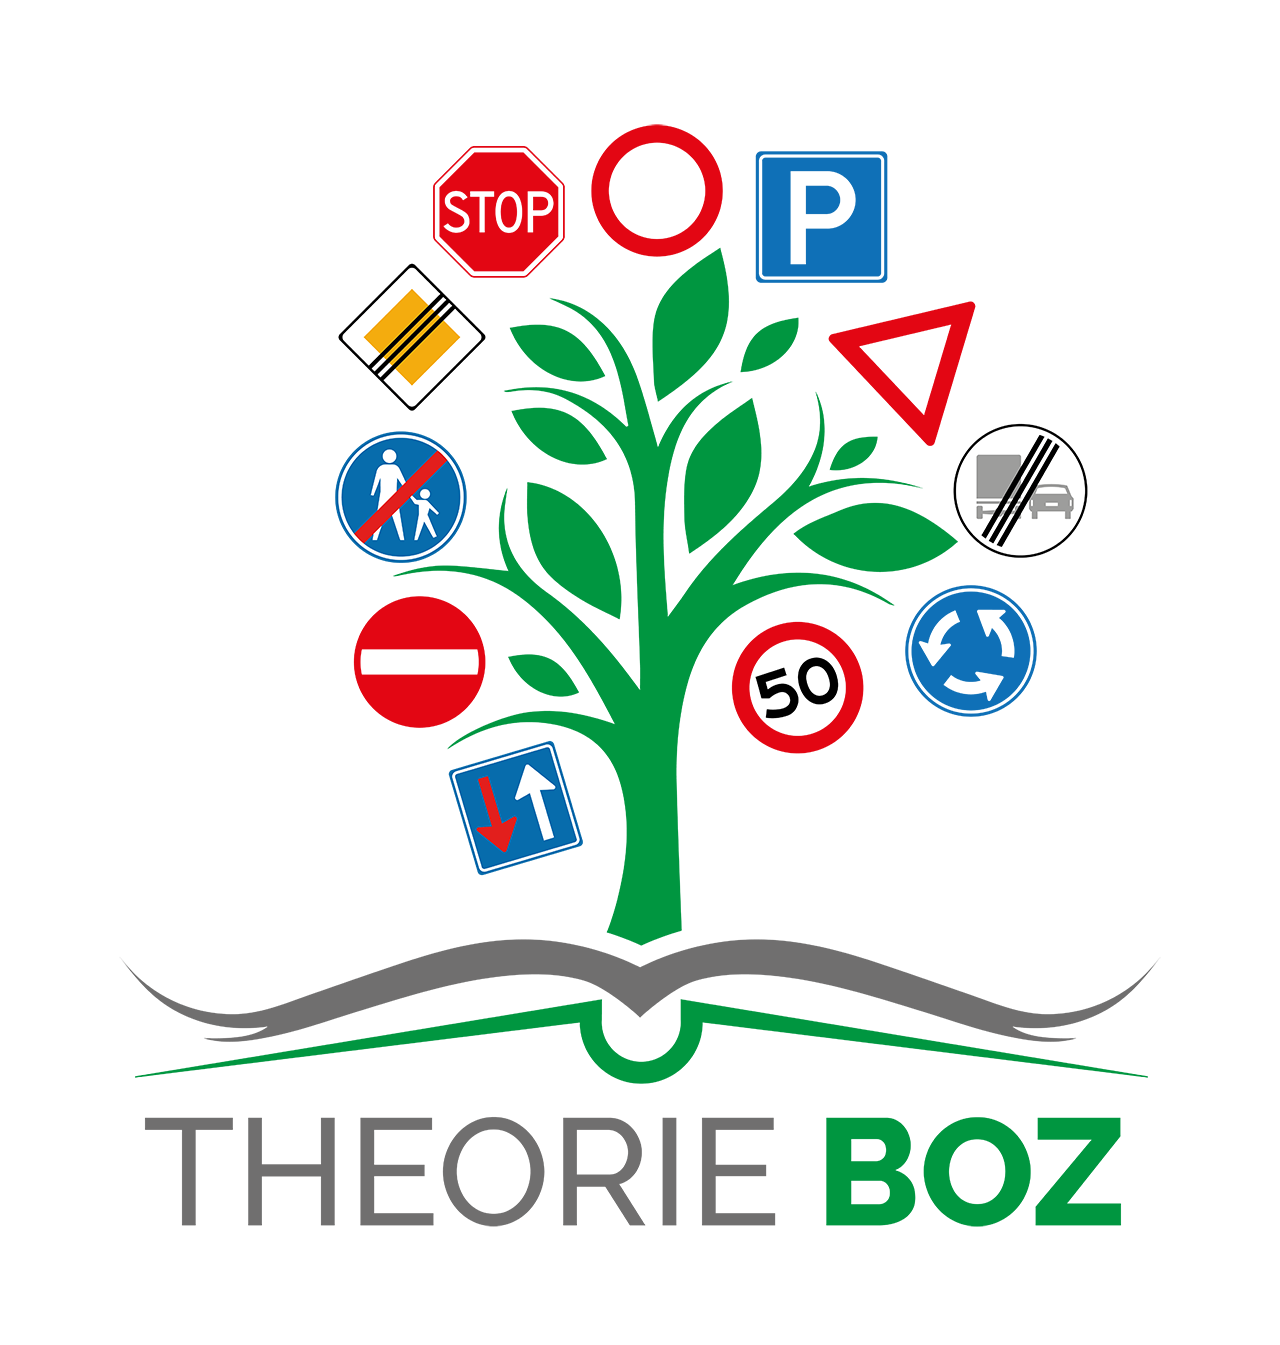 theorie boz